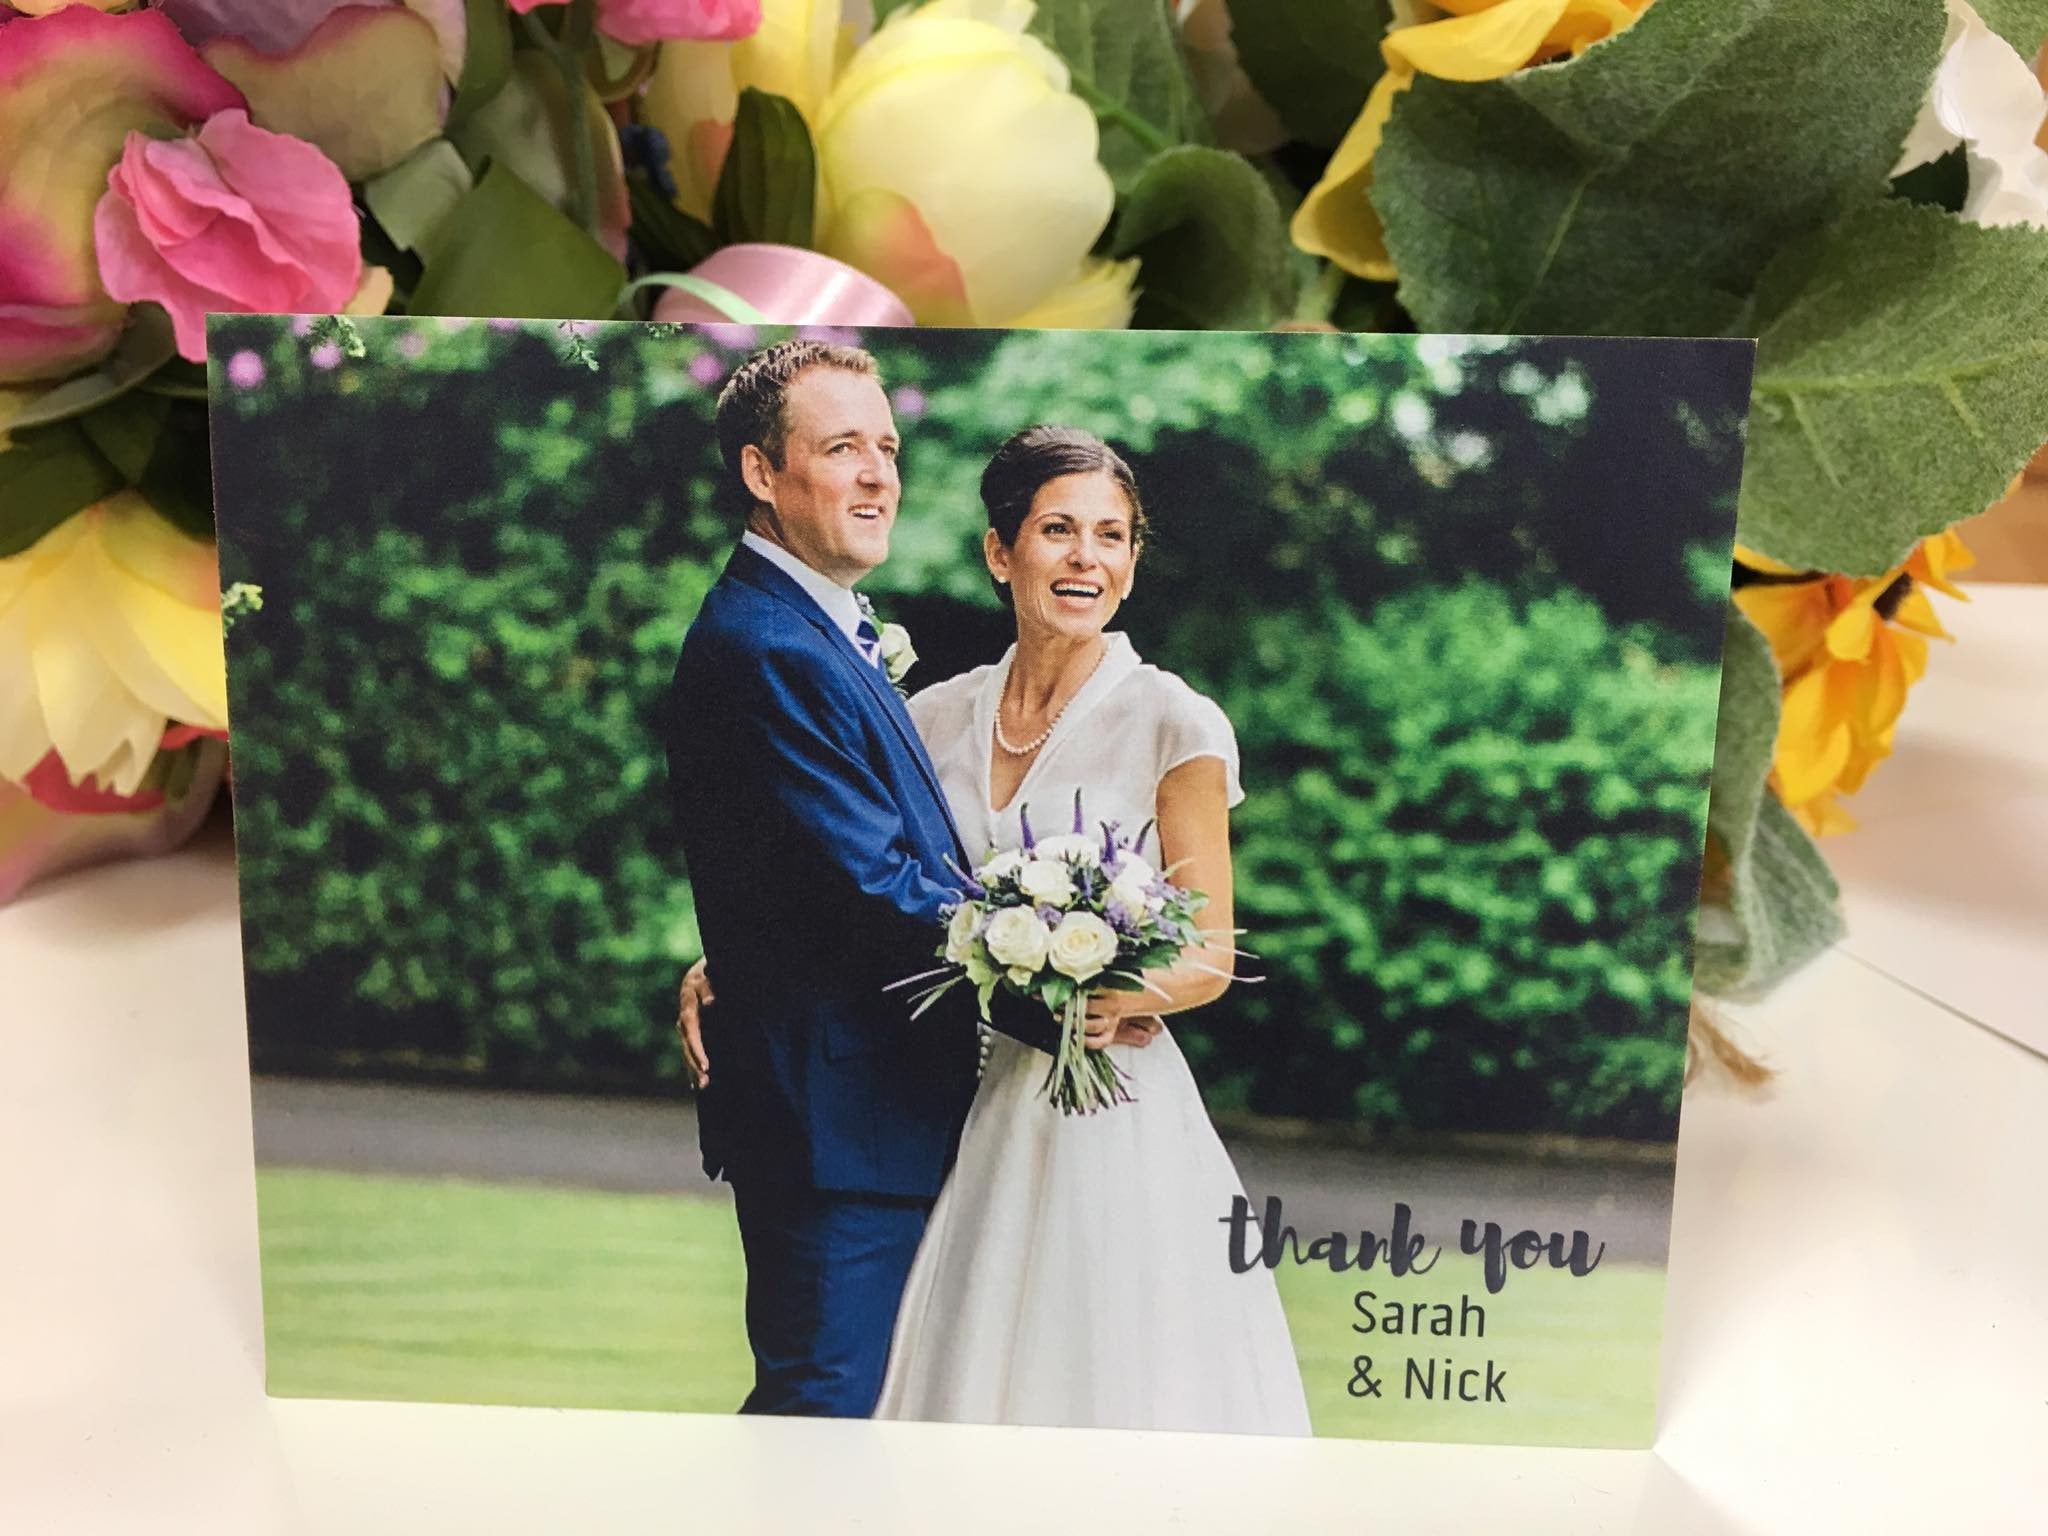 Sarah and Nick - we get the best thank you cards!